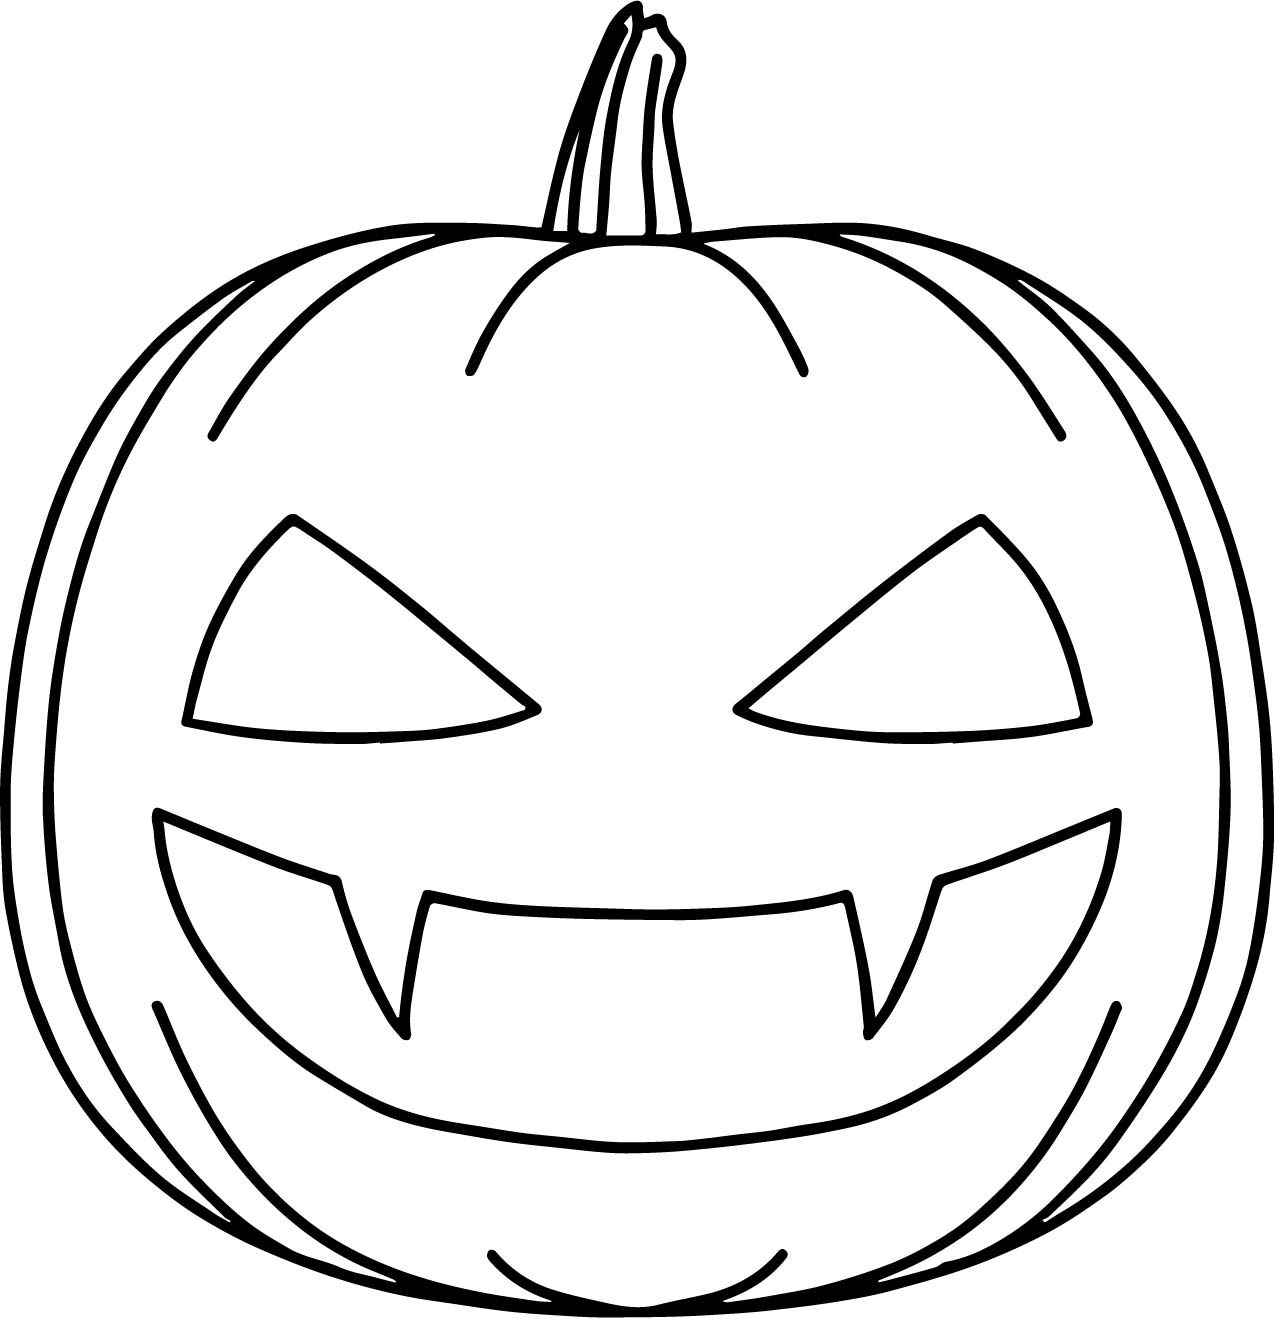 bat halloween pumpkin coloring page - Halloween Pumpkins Coloring Pages